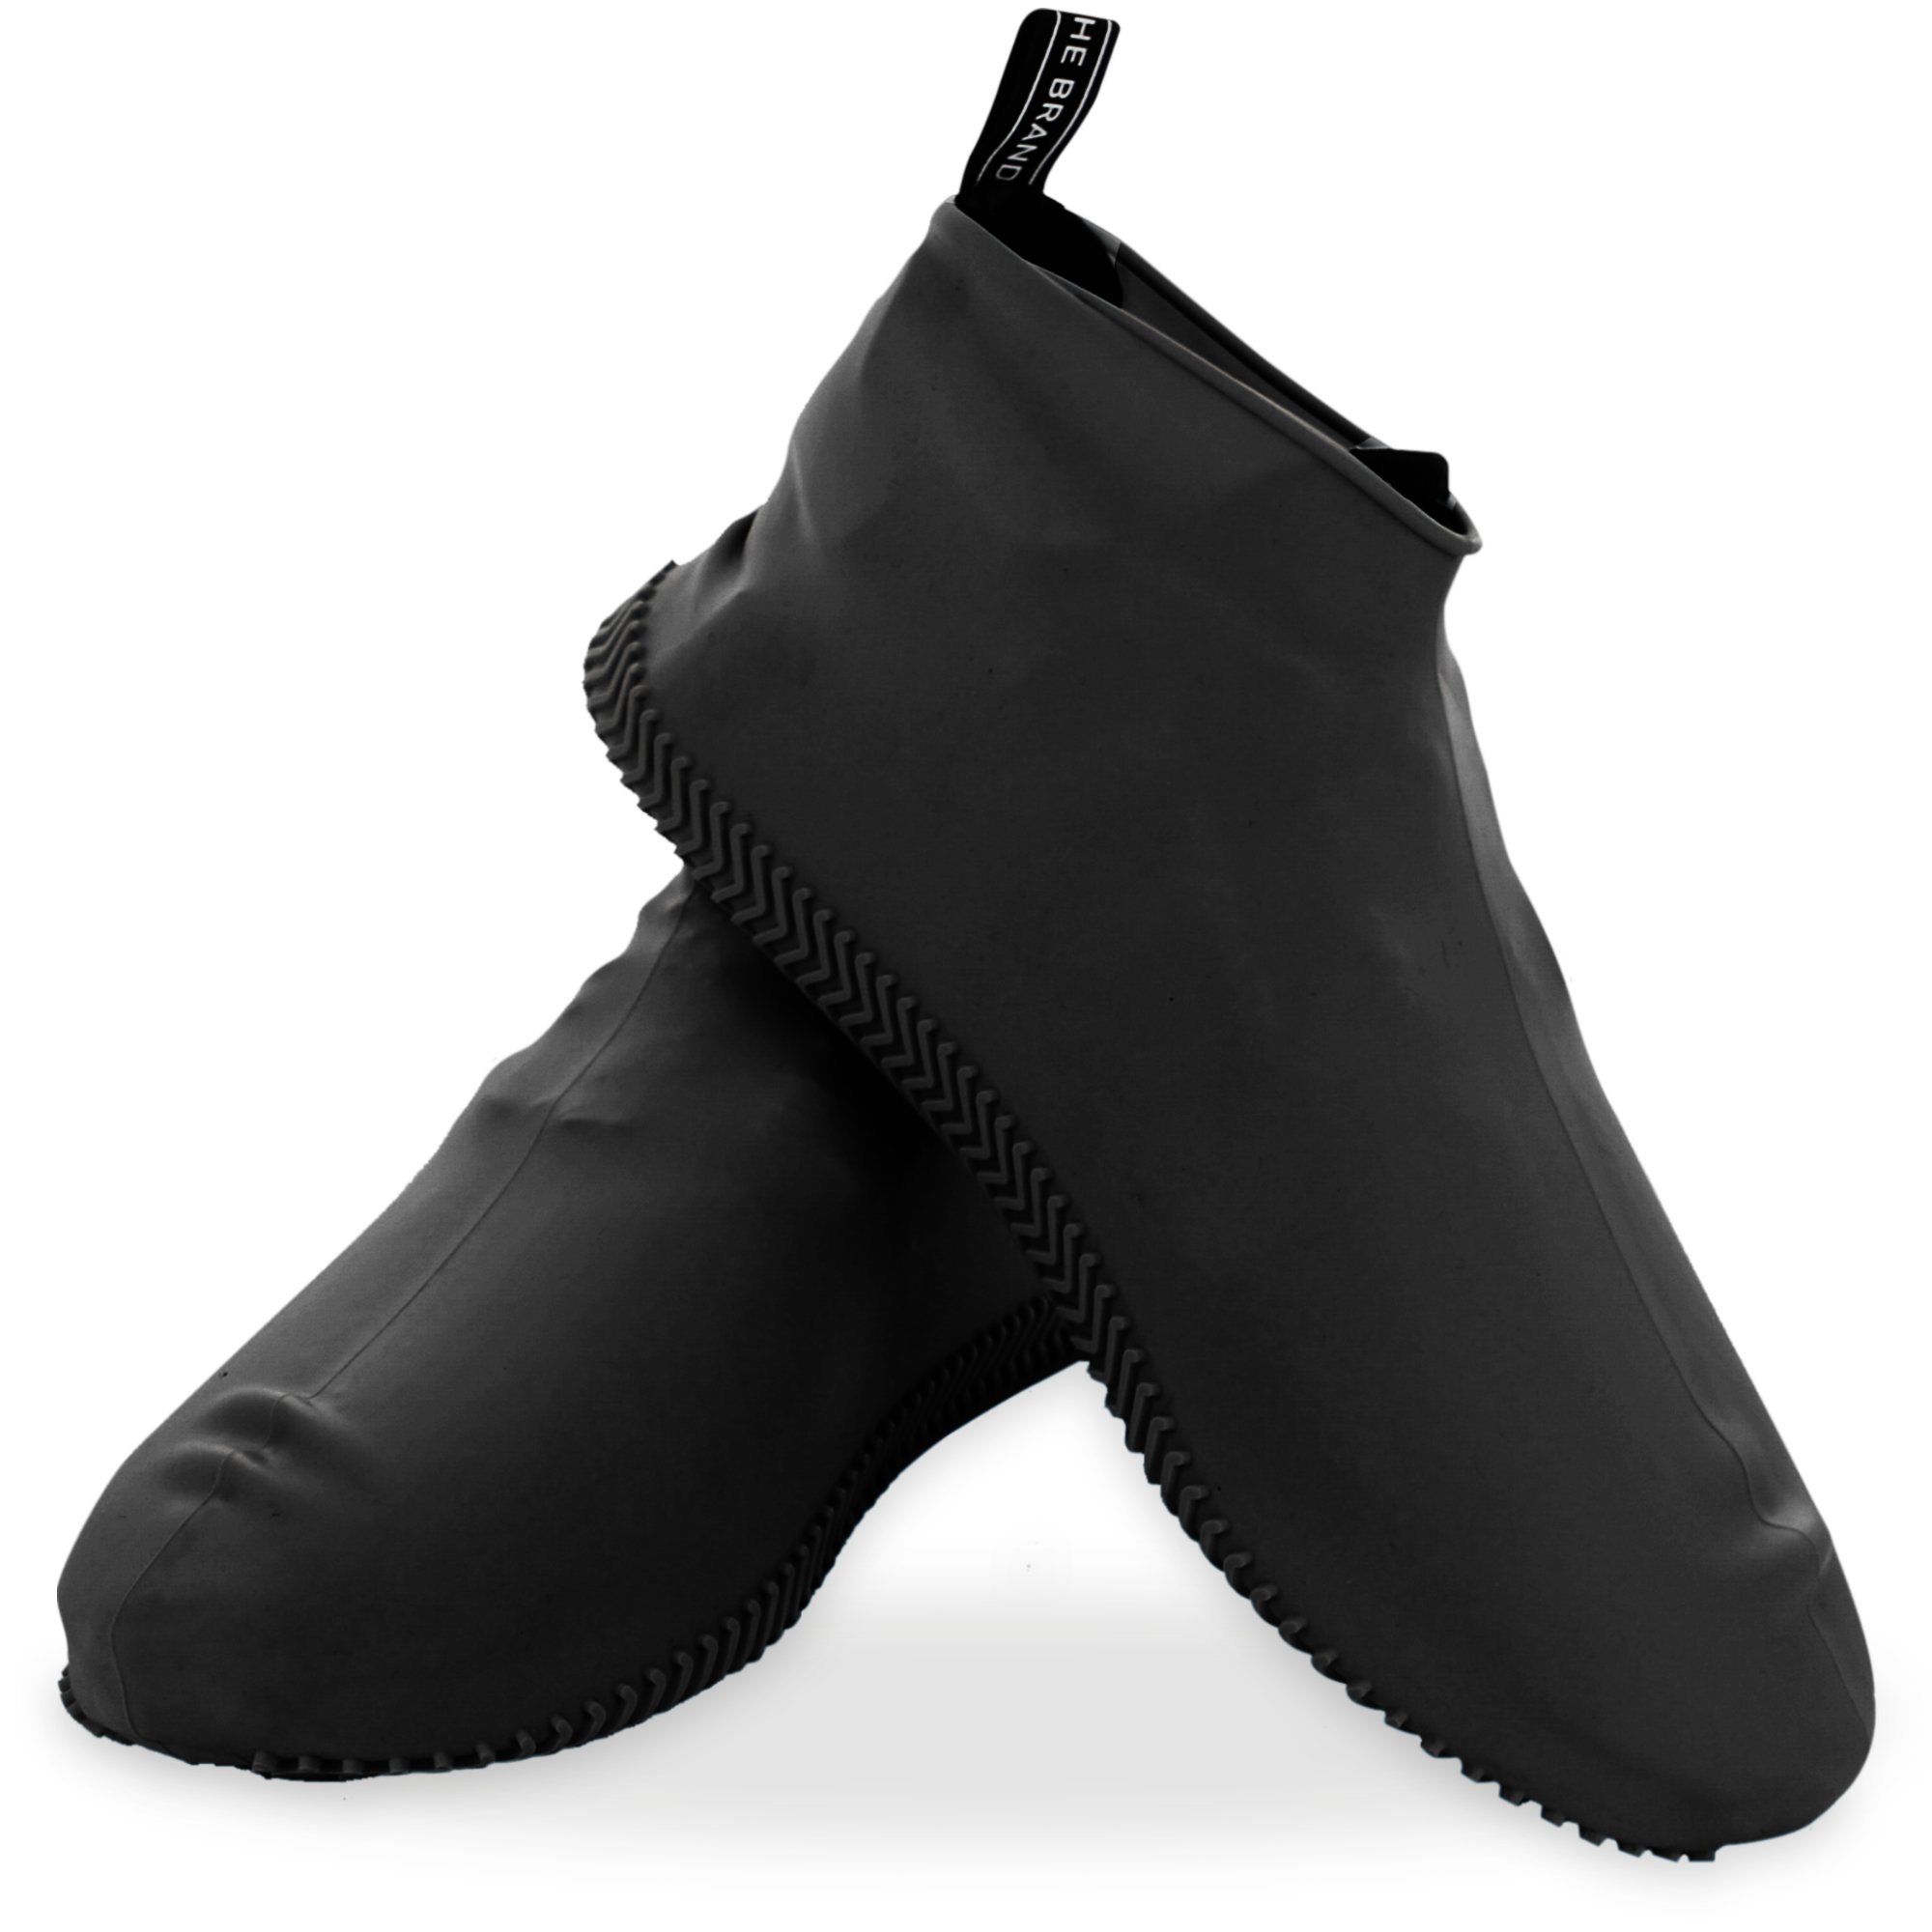 Silicone Shoe cover Outdoor Non-slip Waterproof Shoe Cover Thick Rain Boots M////L